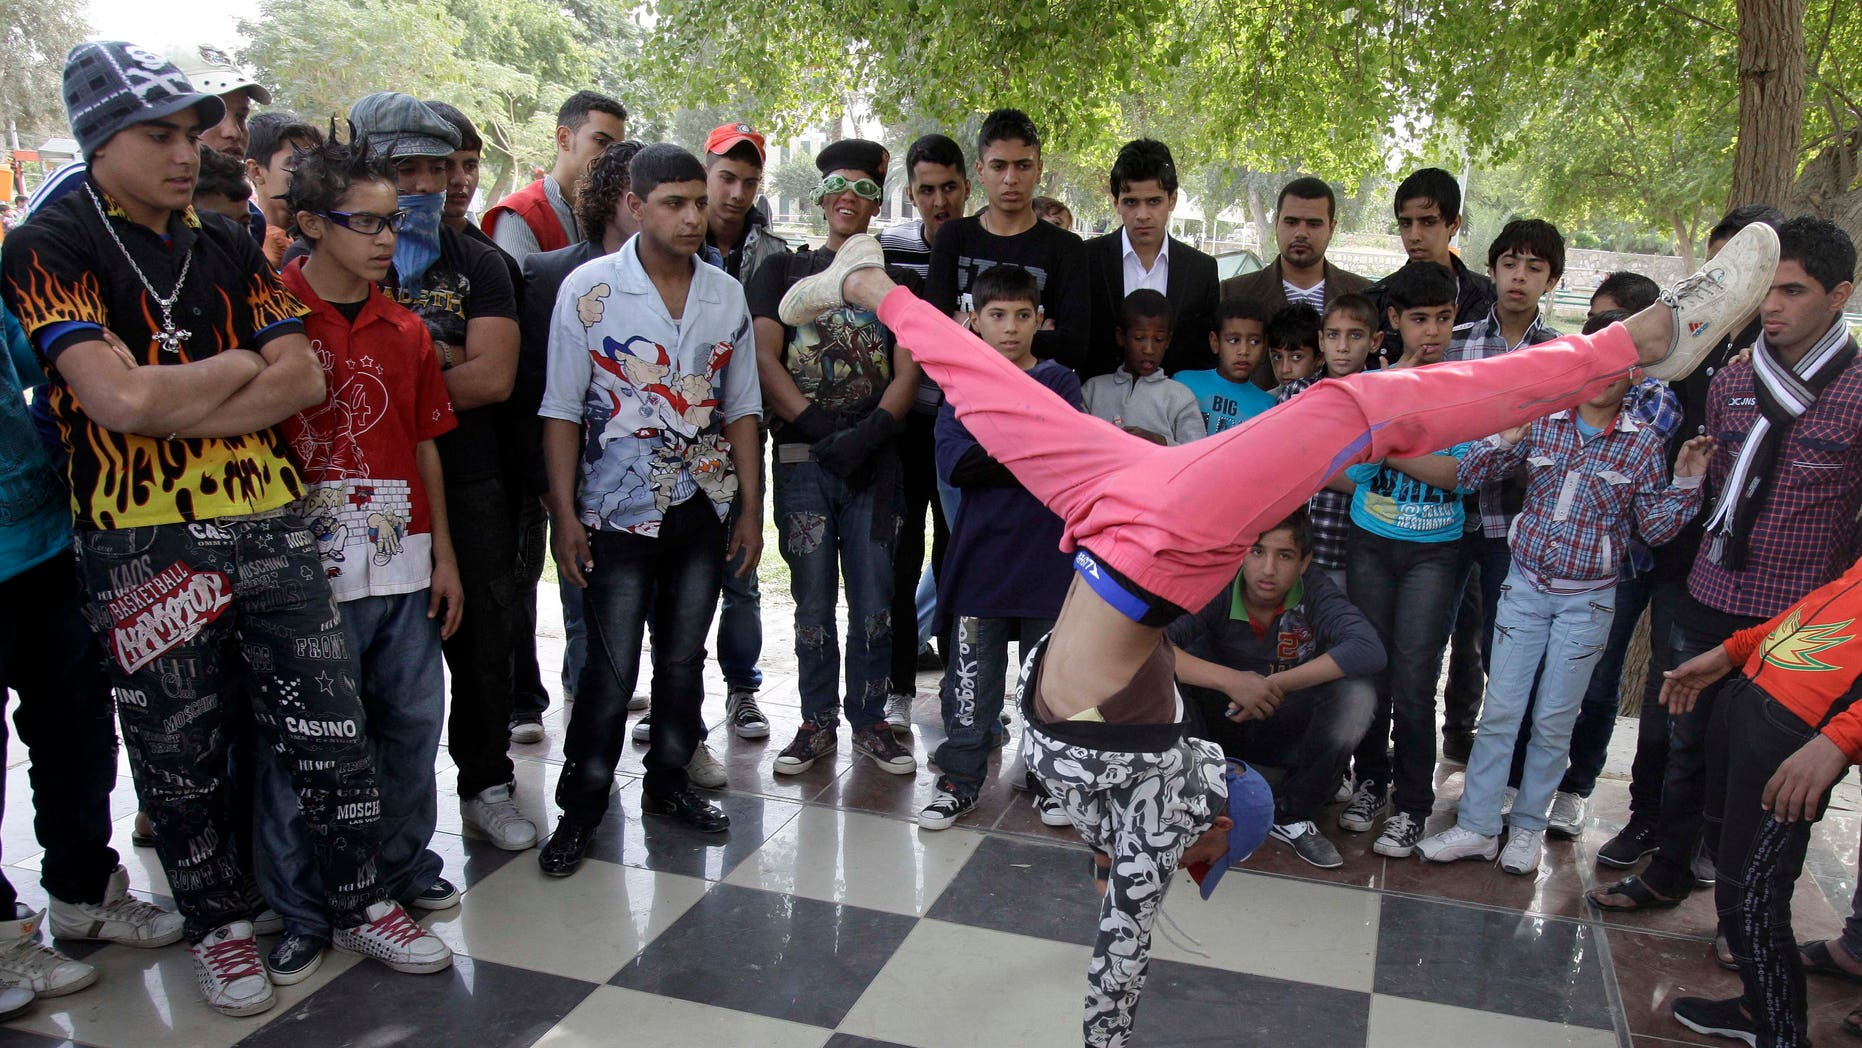 Nov. 10, 2011: An Iraqi boy dances to hip hop music in Baghdad, Iraq. After more than eight years in Iraq, the departing American military's legacy includes a fledgling democracy, bitter memories of war, and for the nation's youth, rap music, tattoos and slang.